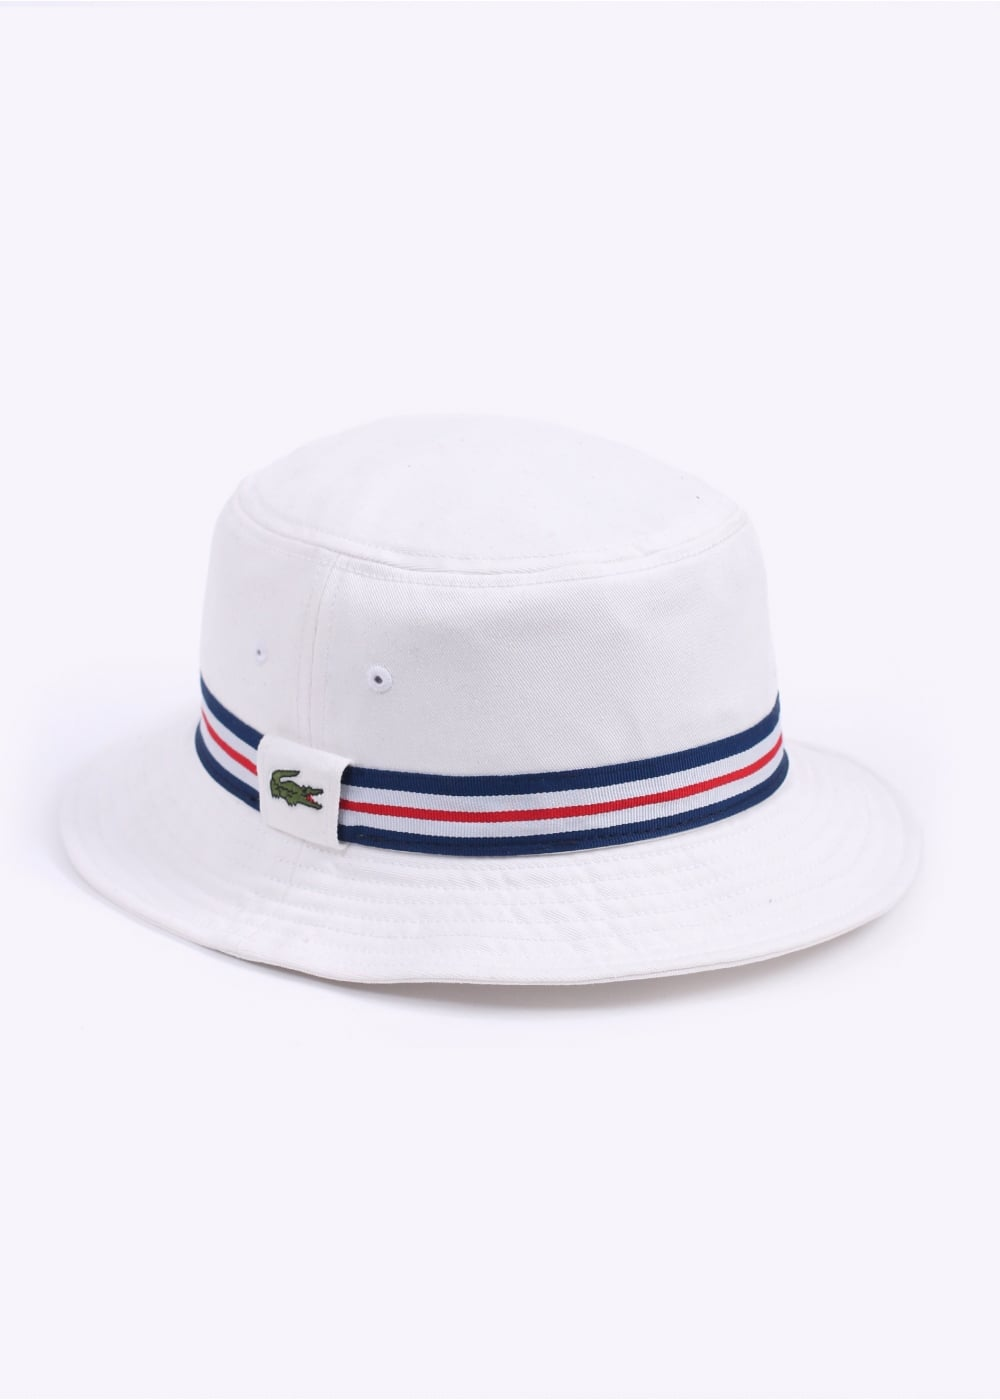 64704bacf76 Lacoste Bucket Hat - White